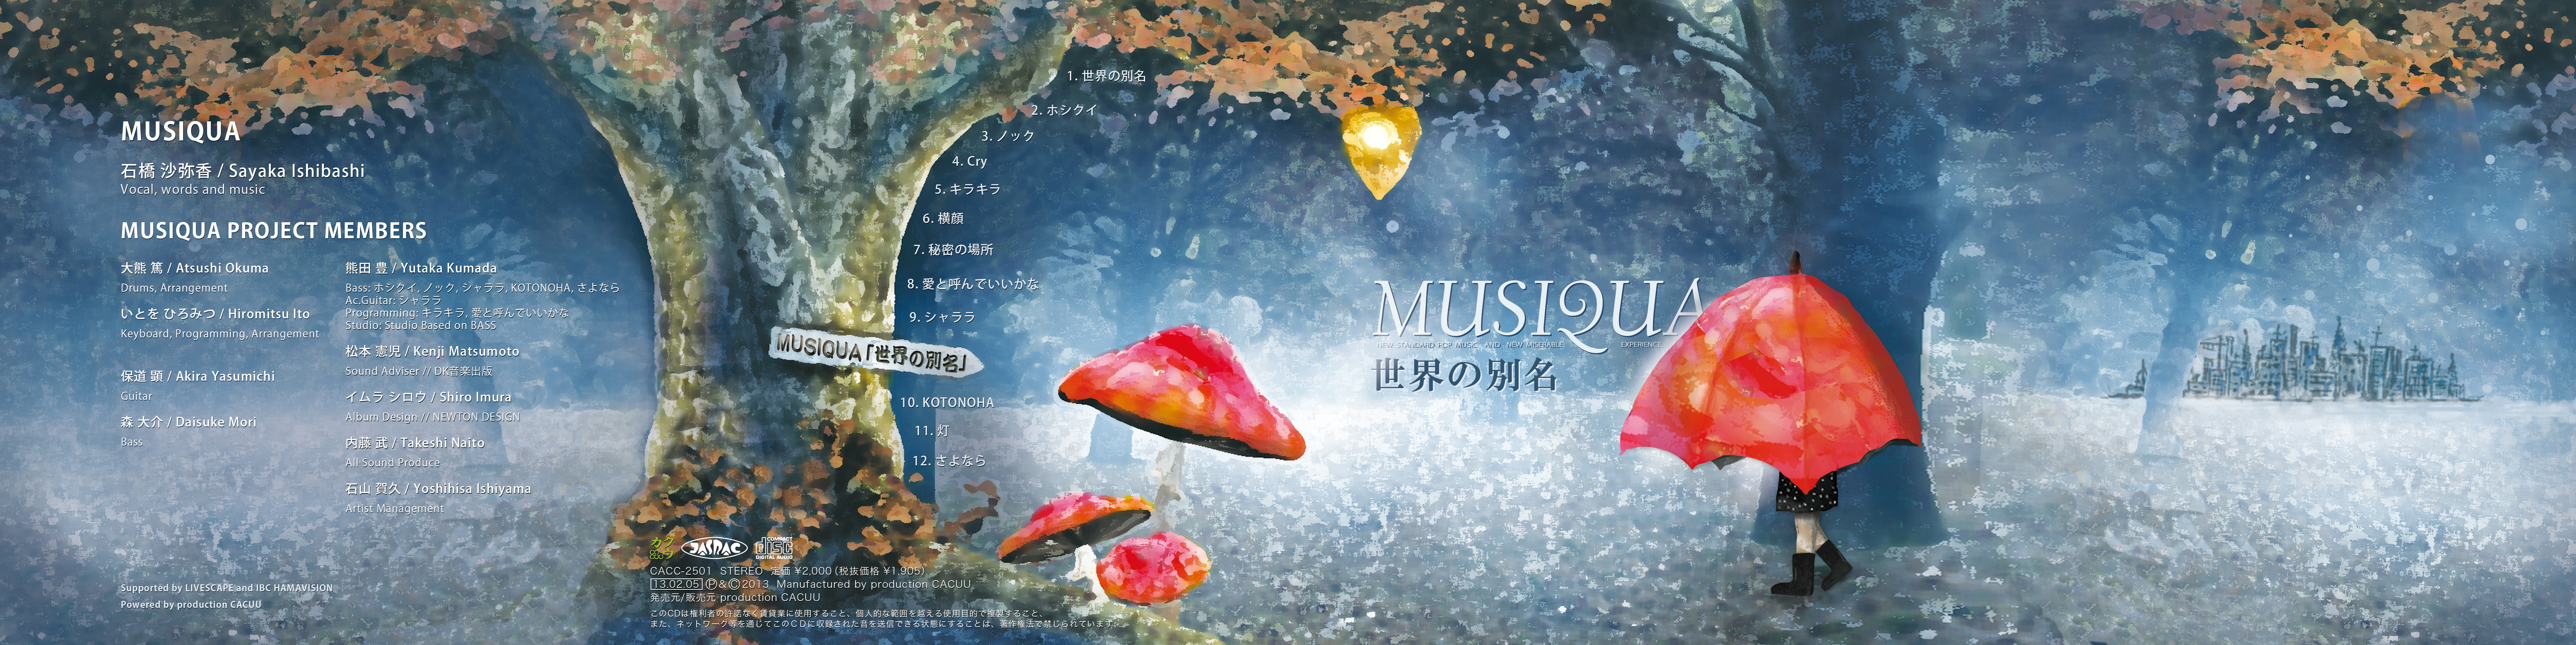 Musiqua Album Jacket Design